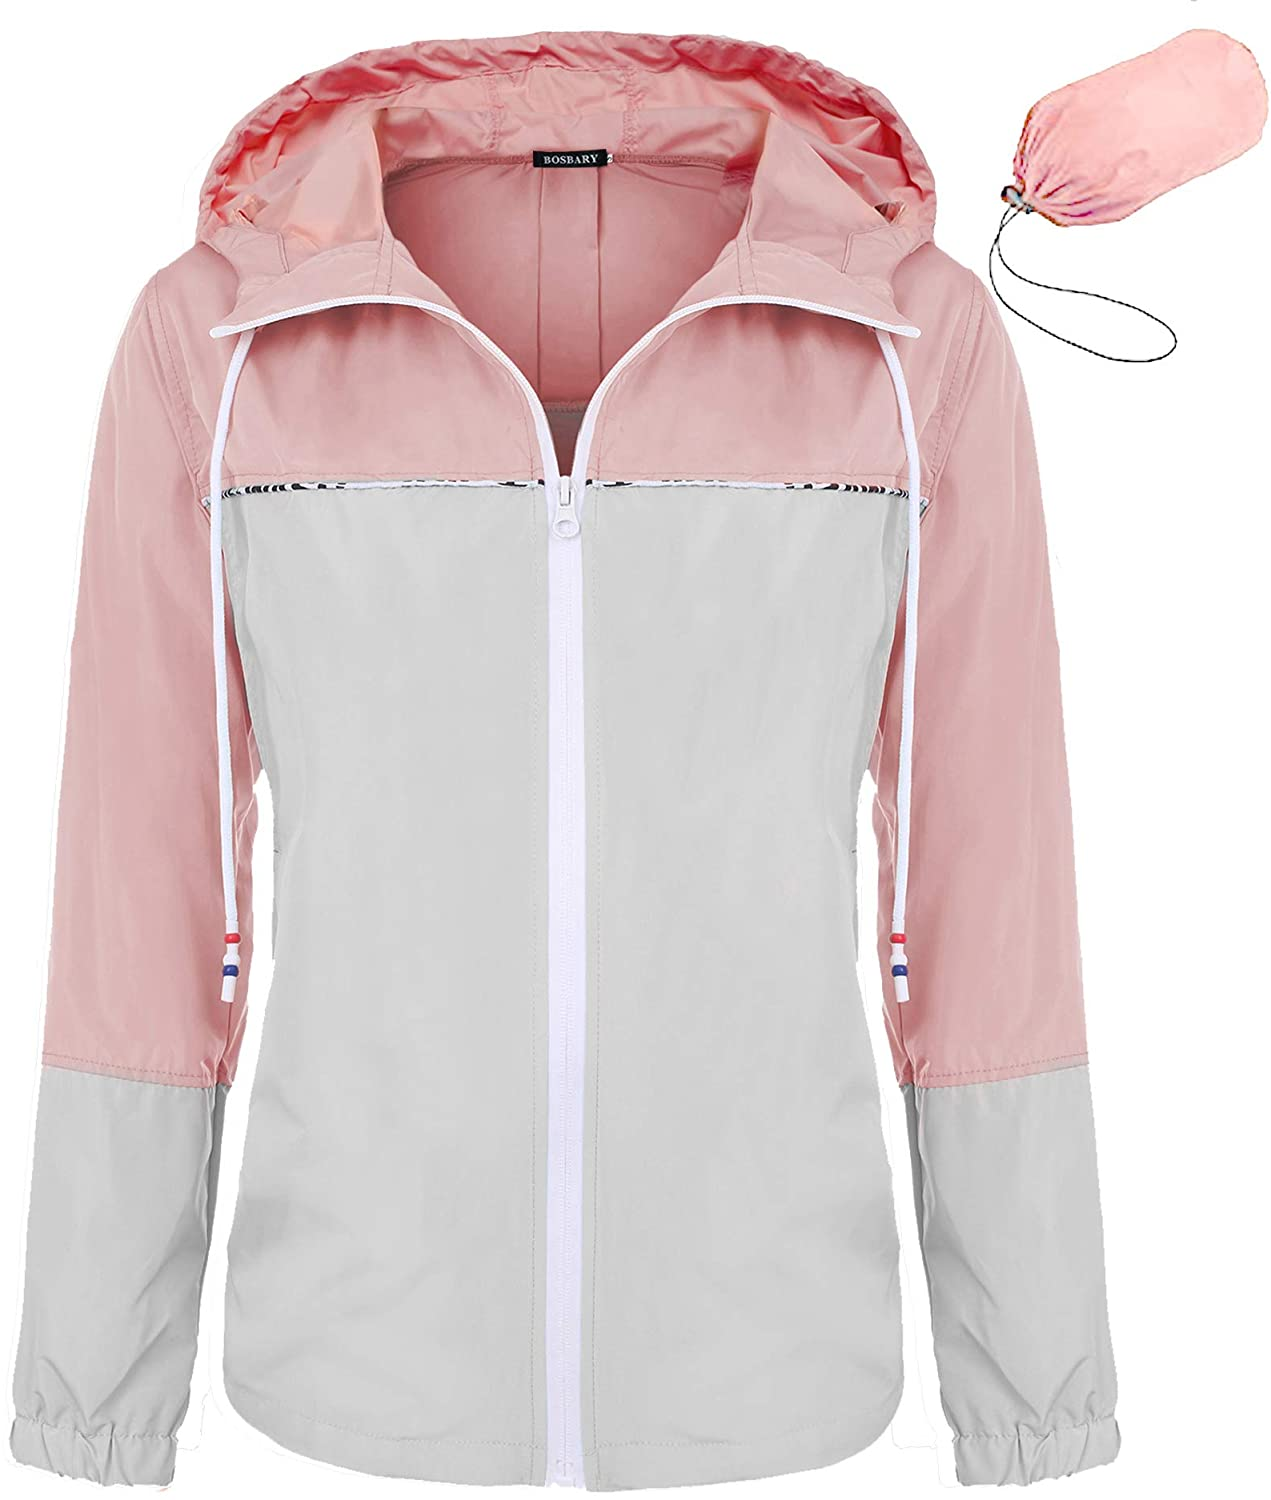 bosbary Women's Raincoats Waterproof Packable Windbreaker Active Outdoor Hooded Lightweight Rain Jacket(Gray/Pink,Small)